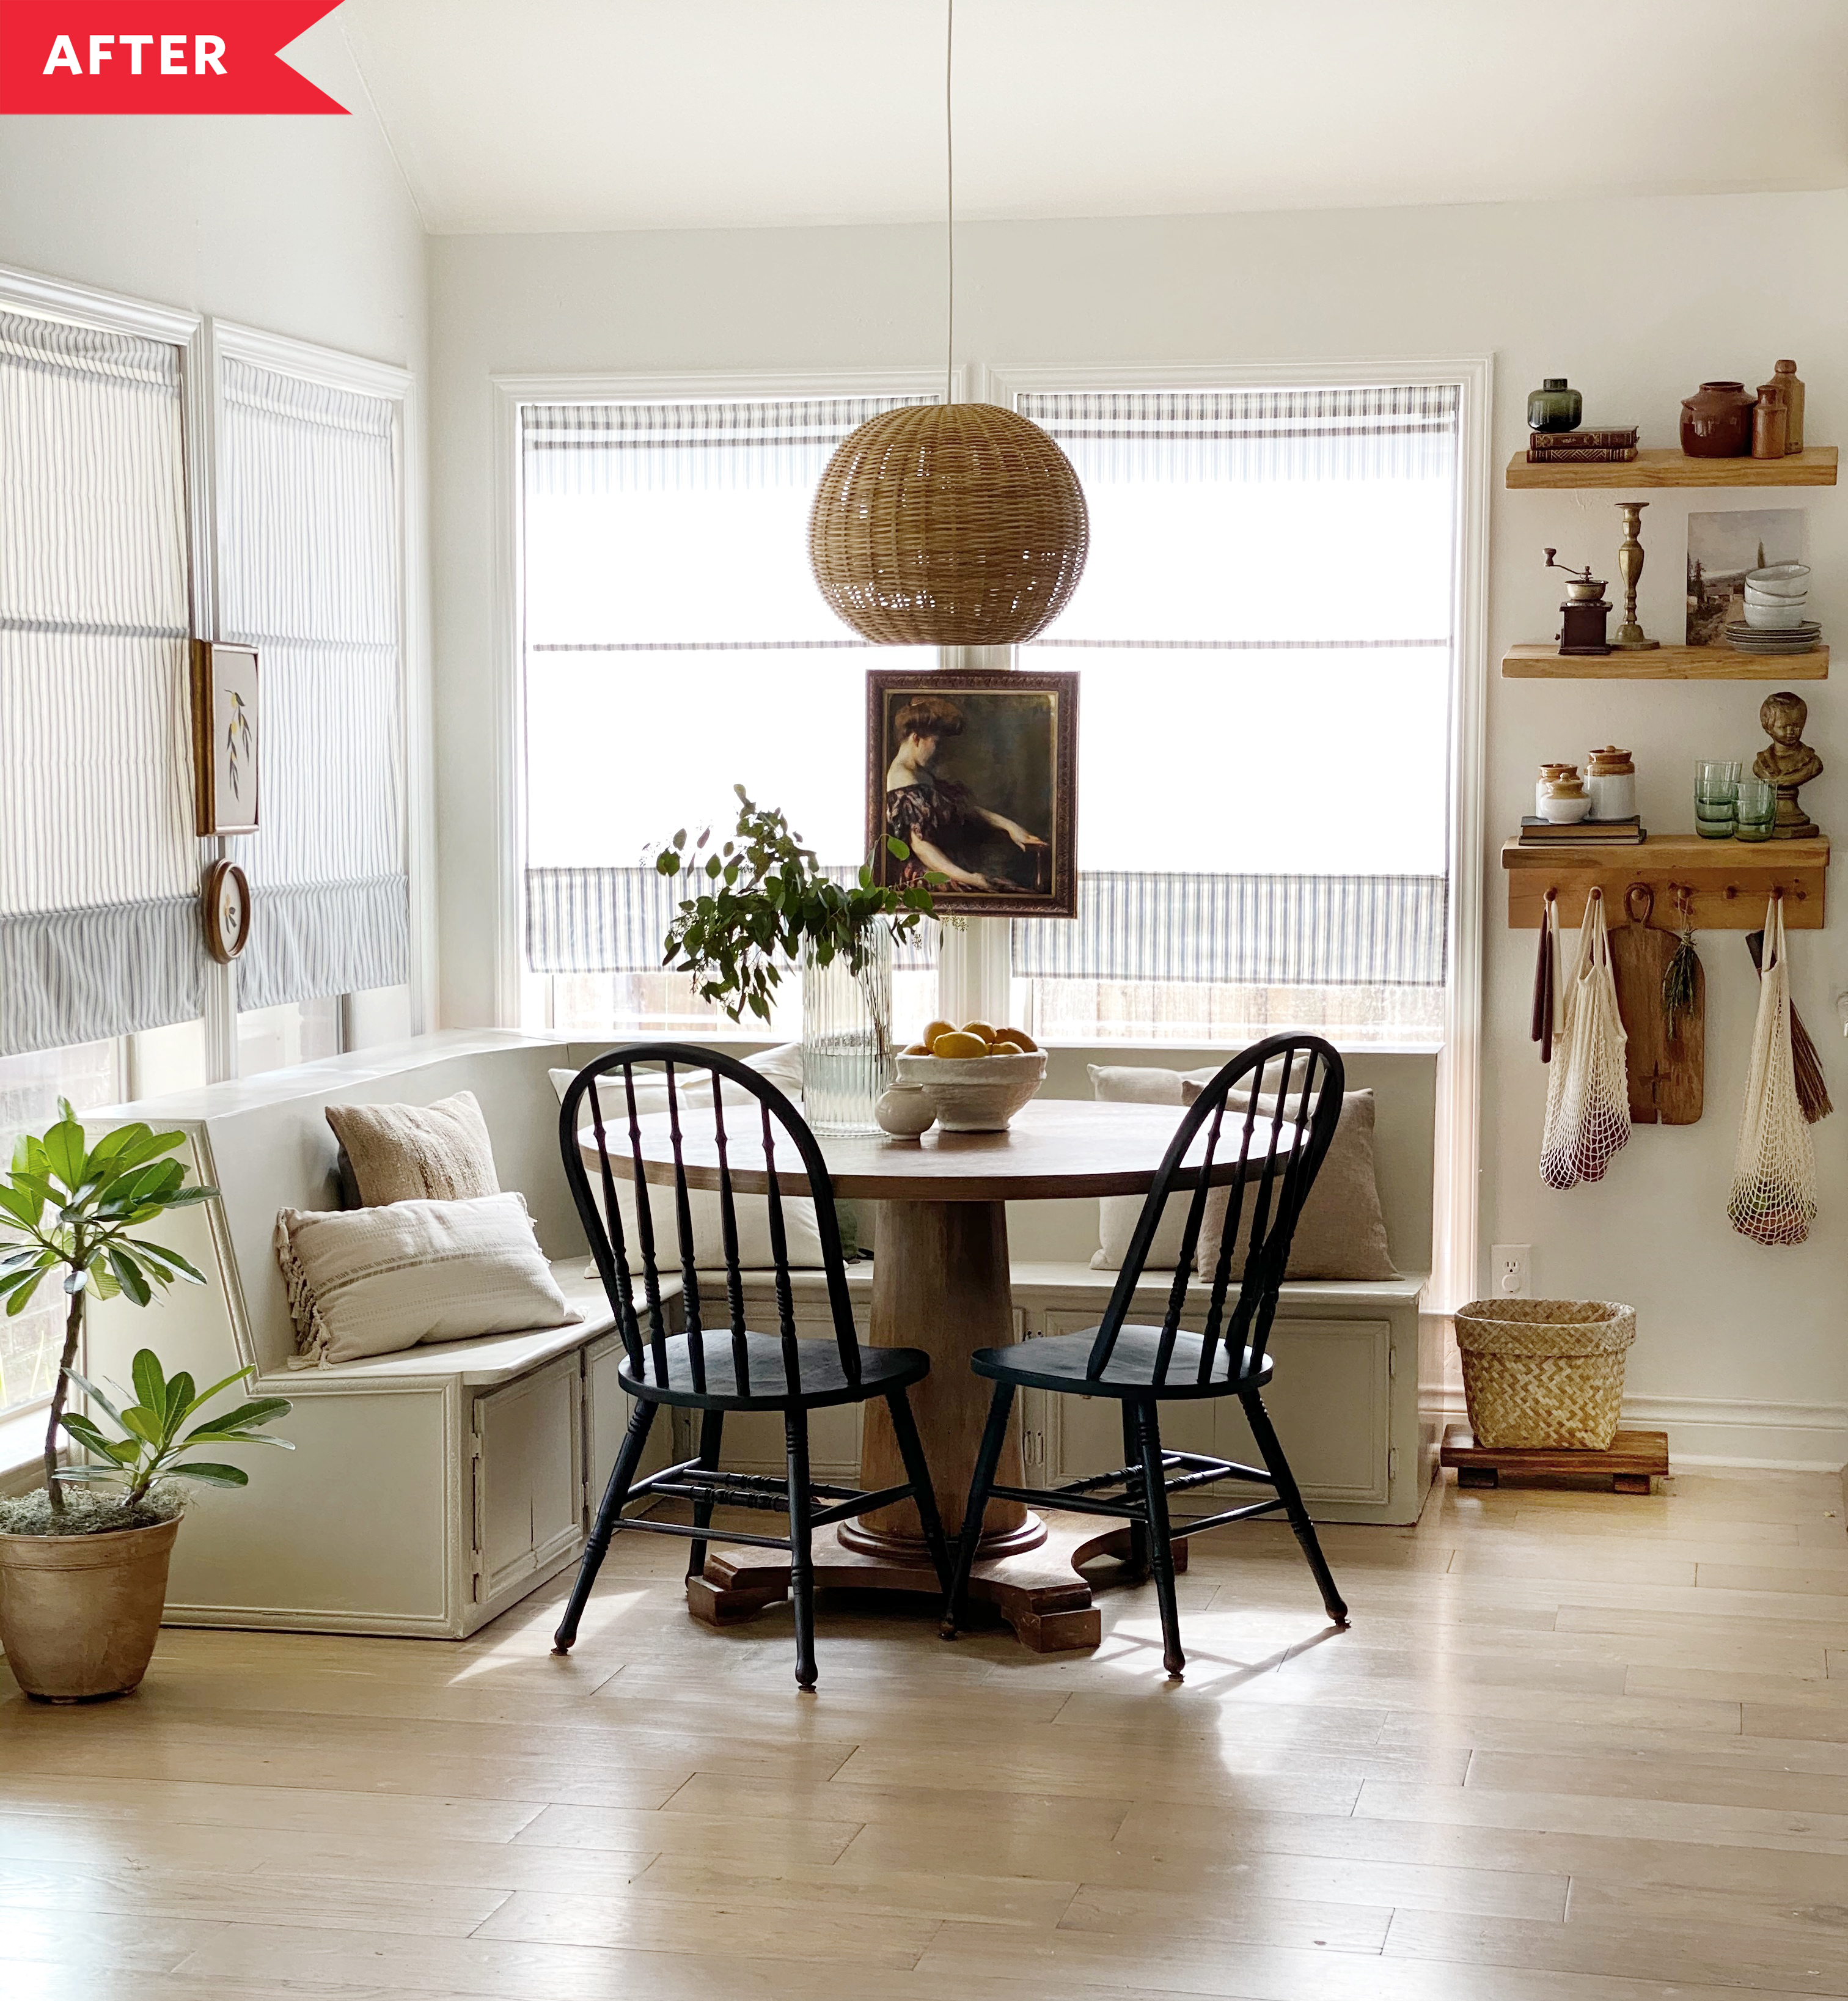 12 Small Breakfast Nooks For Cozy Kitchen Dining Space Ideas Apartment Therapy